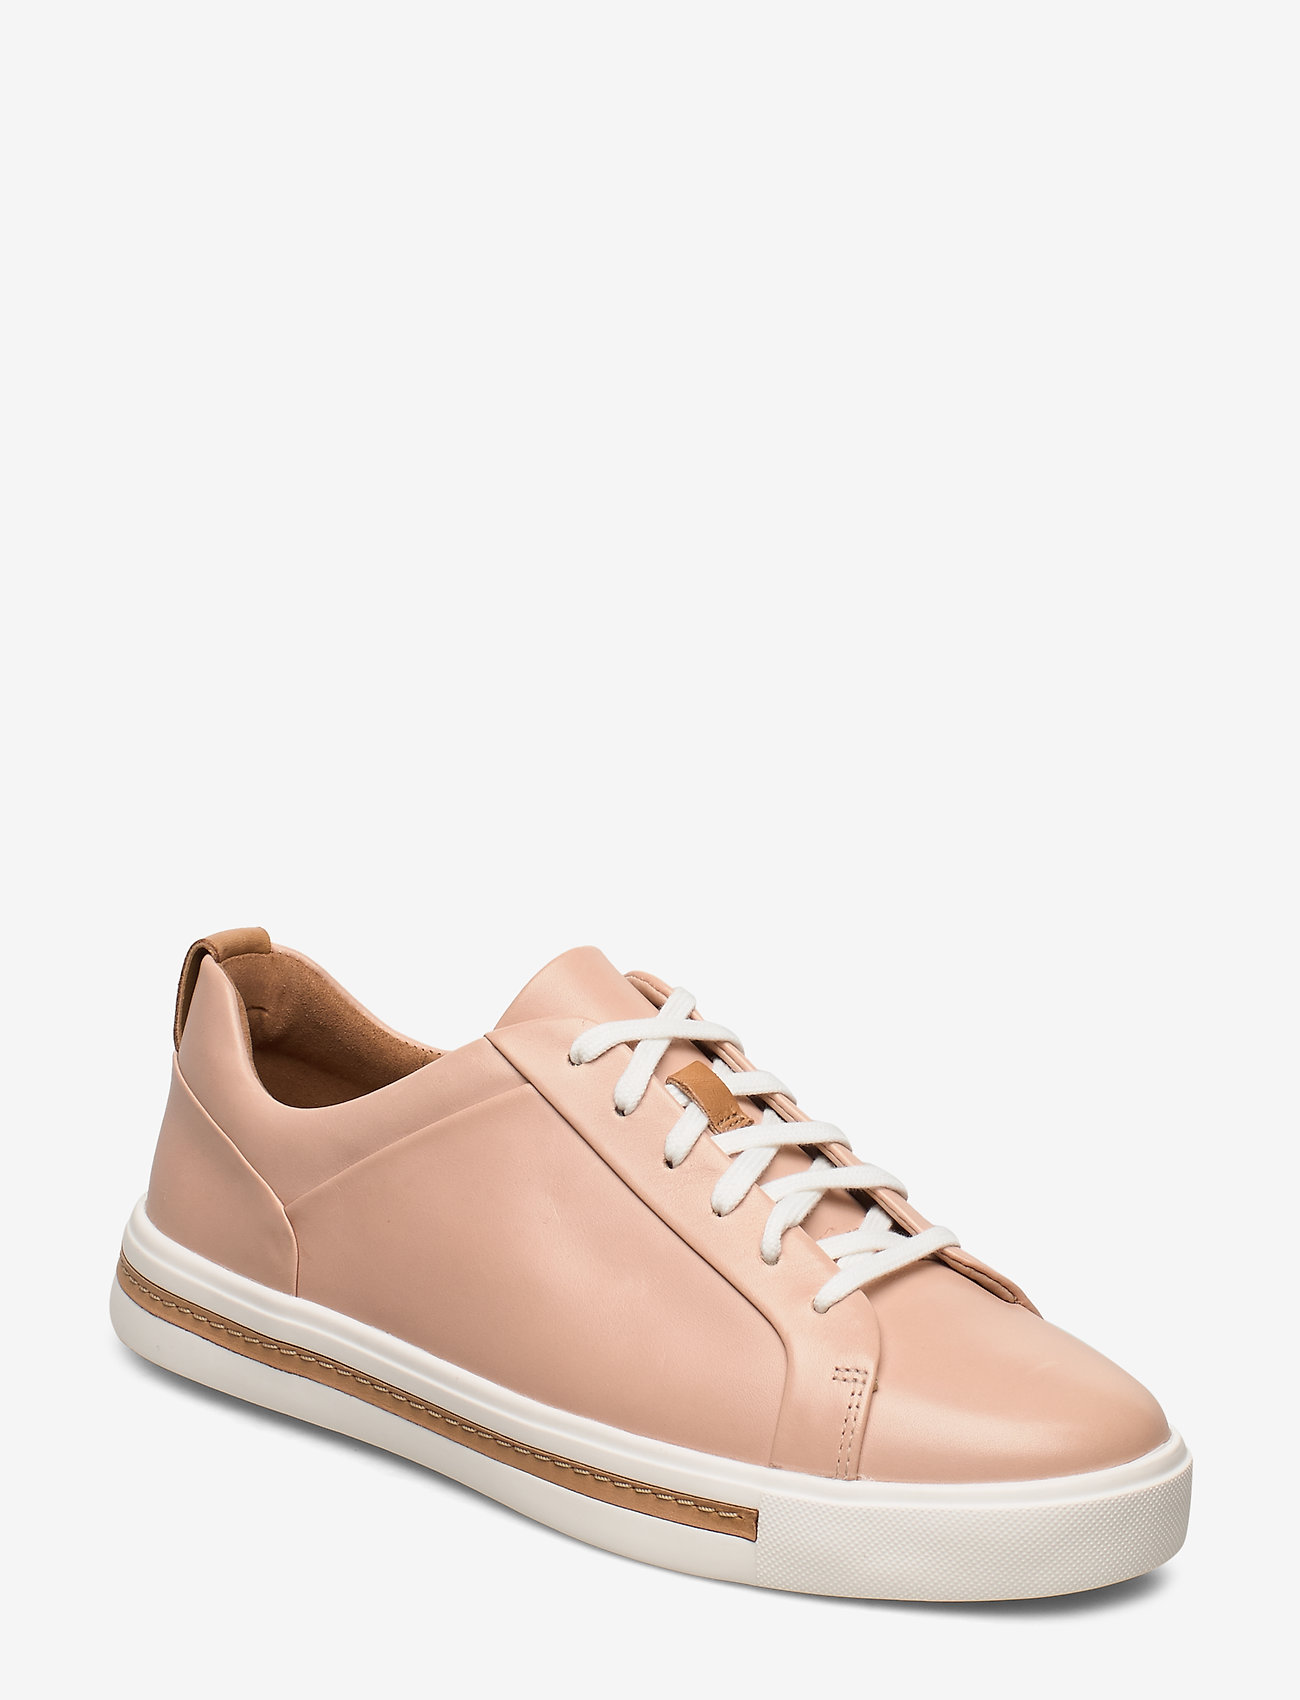 Clarks - Un Maui Lace - låga sneakers - nude leather - 0